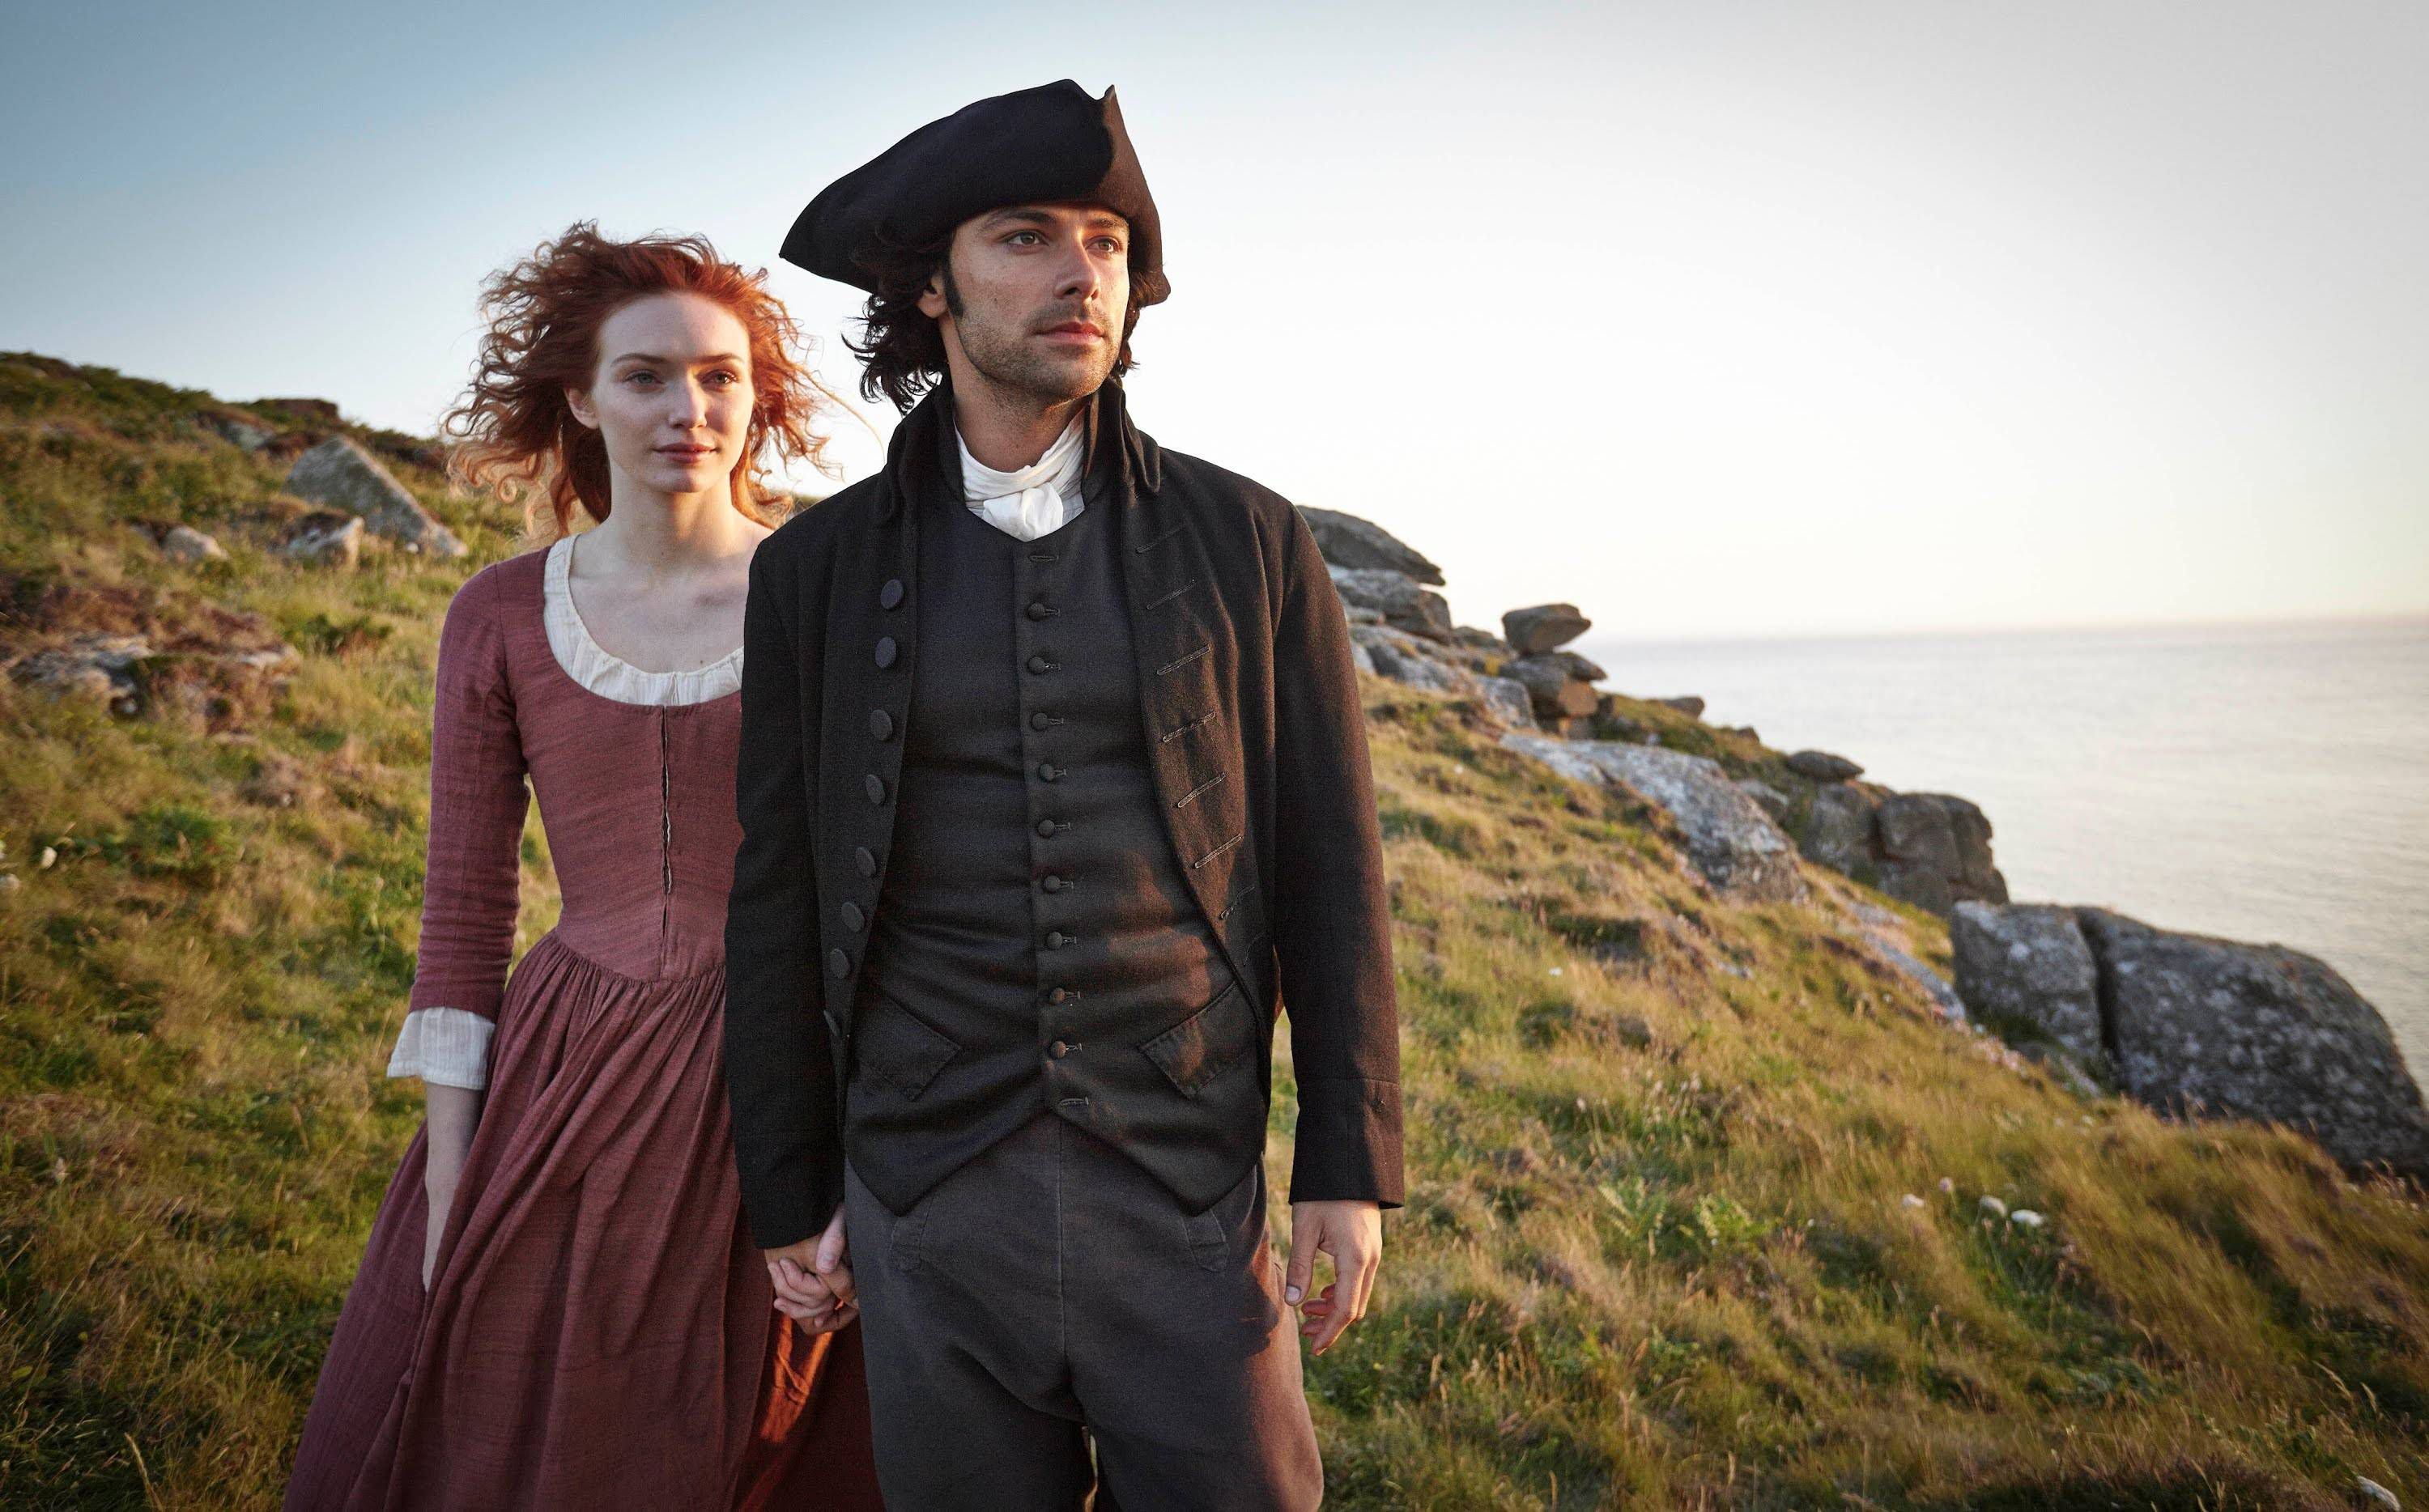 Poldark | What to Read if You Want More British Drama